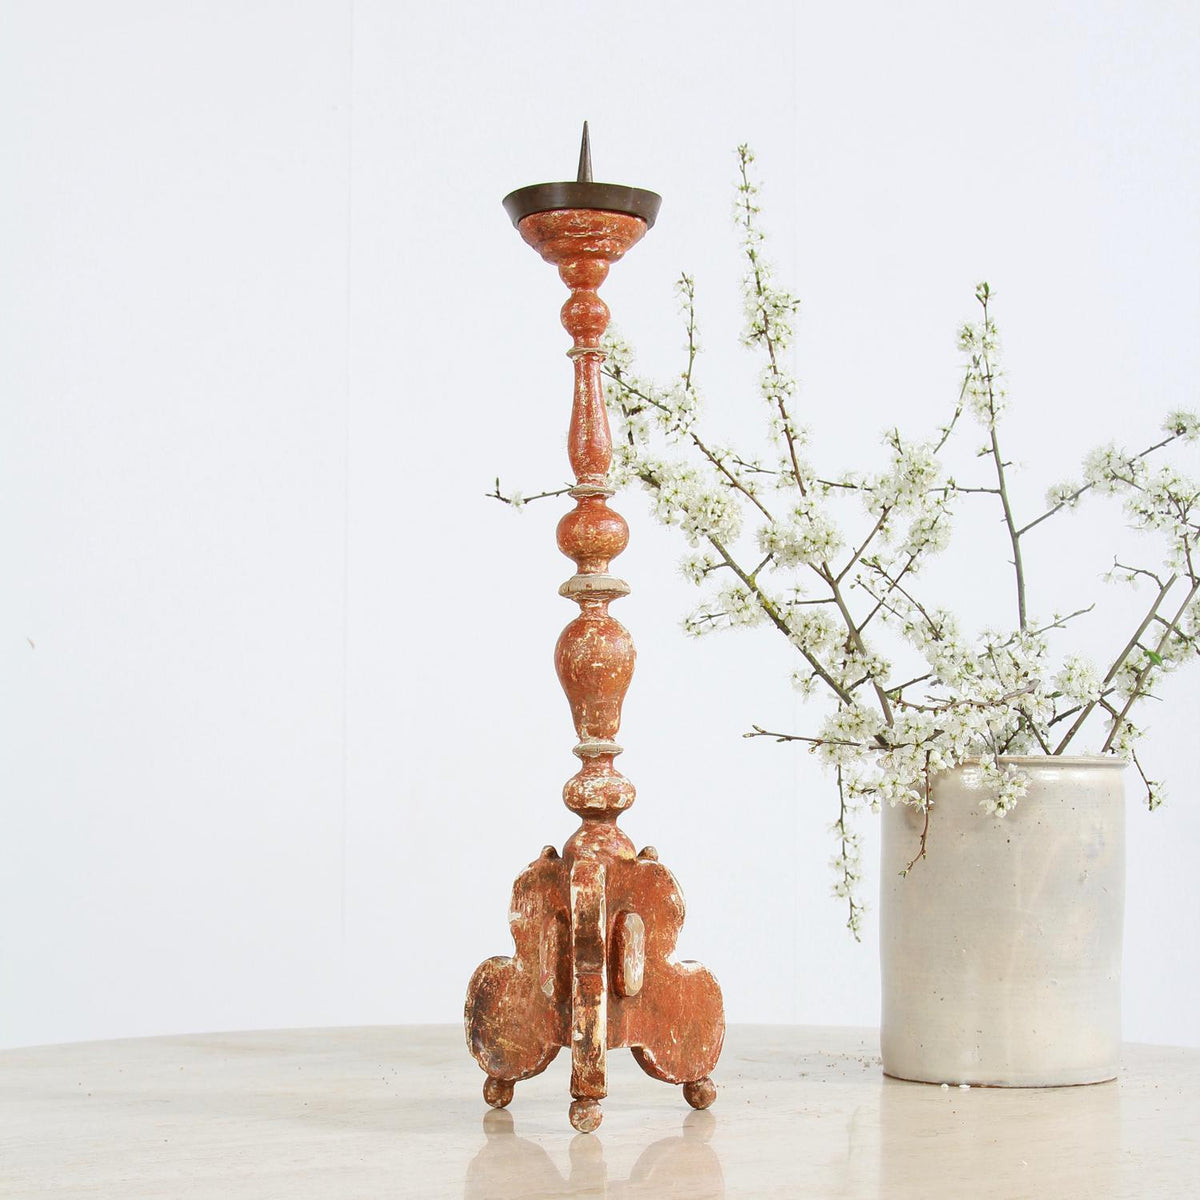 Italian 19thC Pricket Candlestick with original Gesso Patina